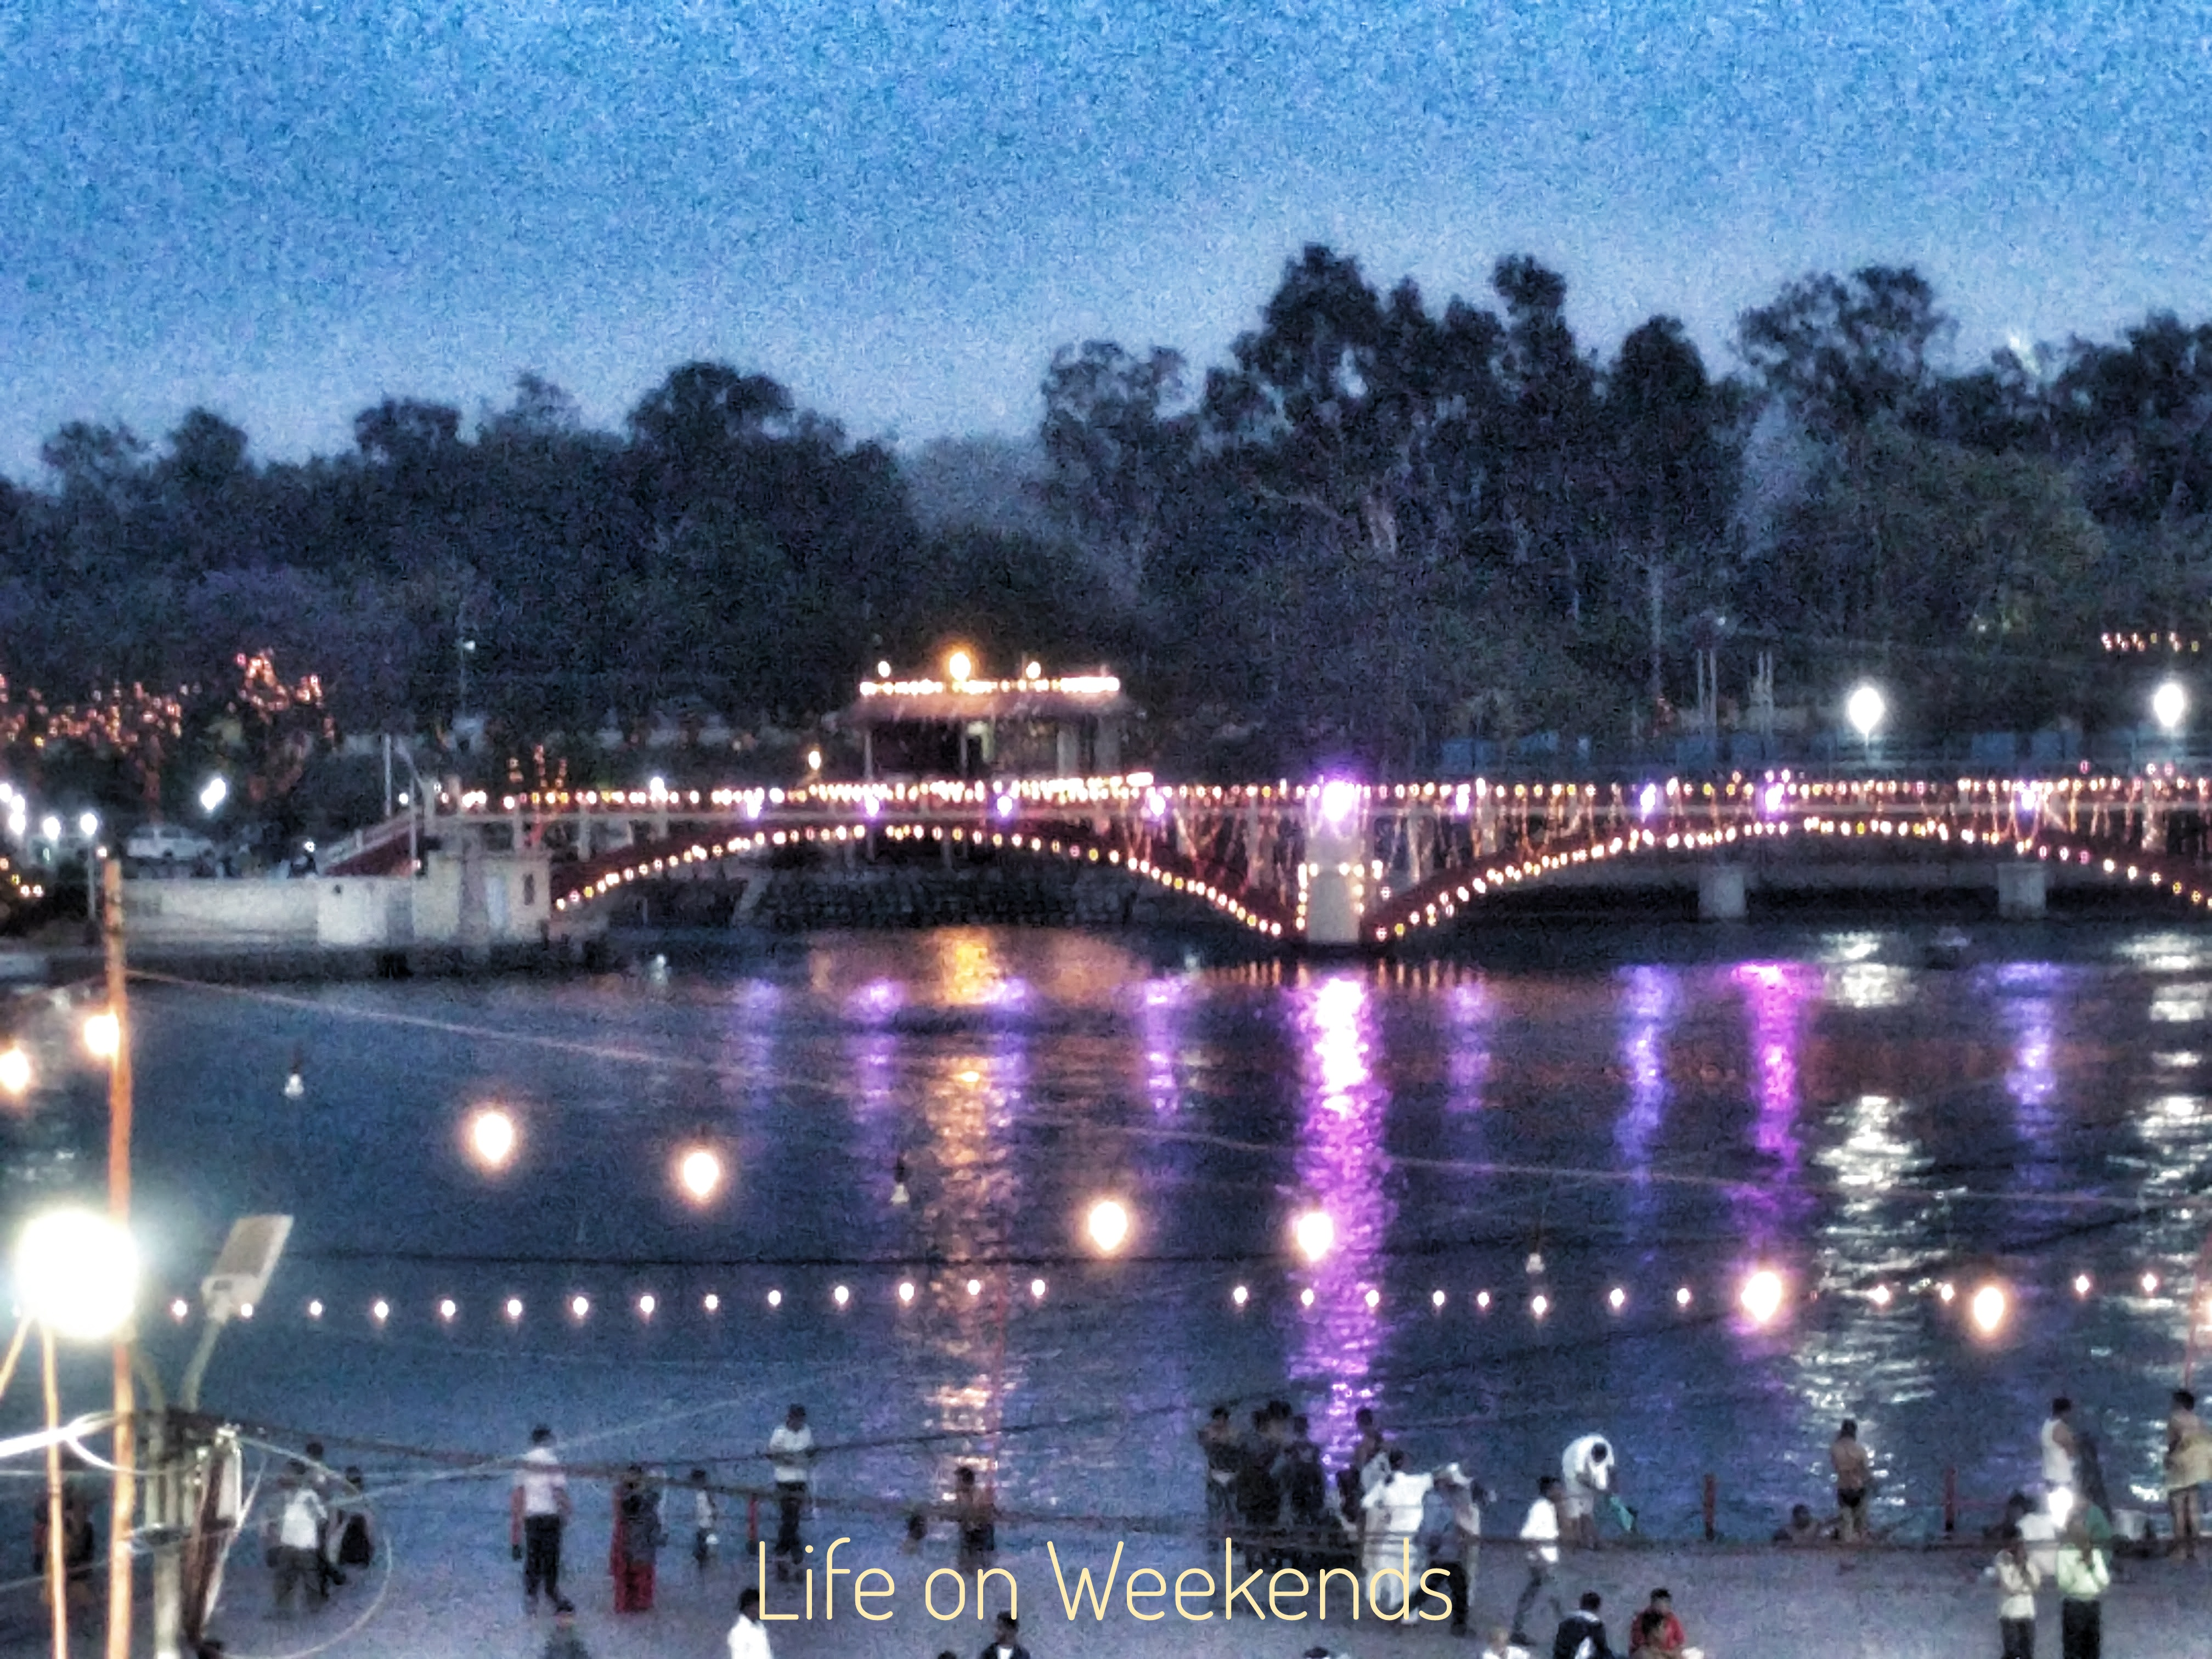 Haridwar, Uttarakhand @Life on Weekends